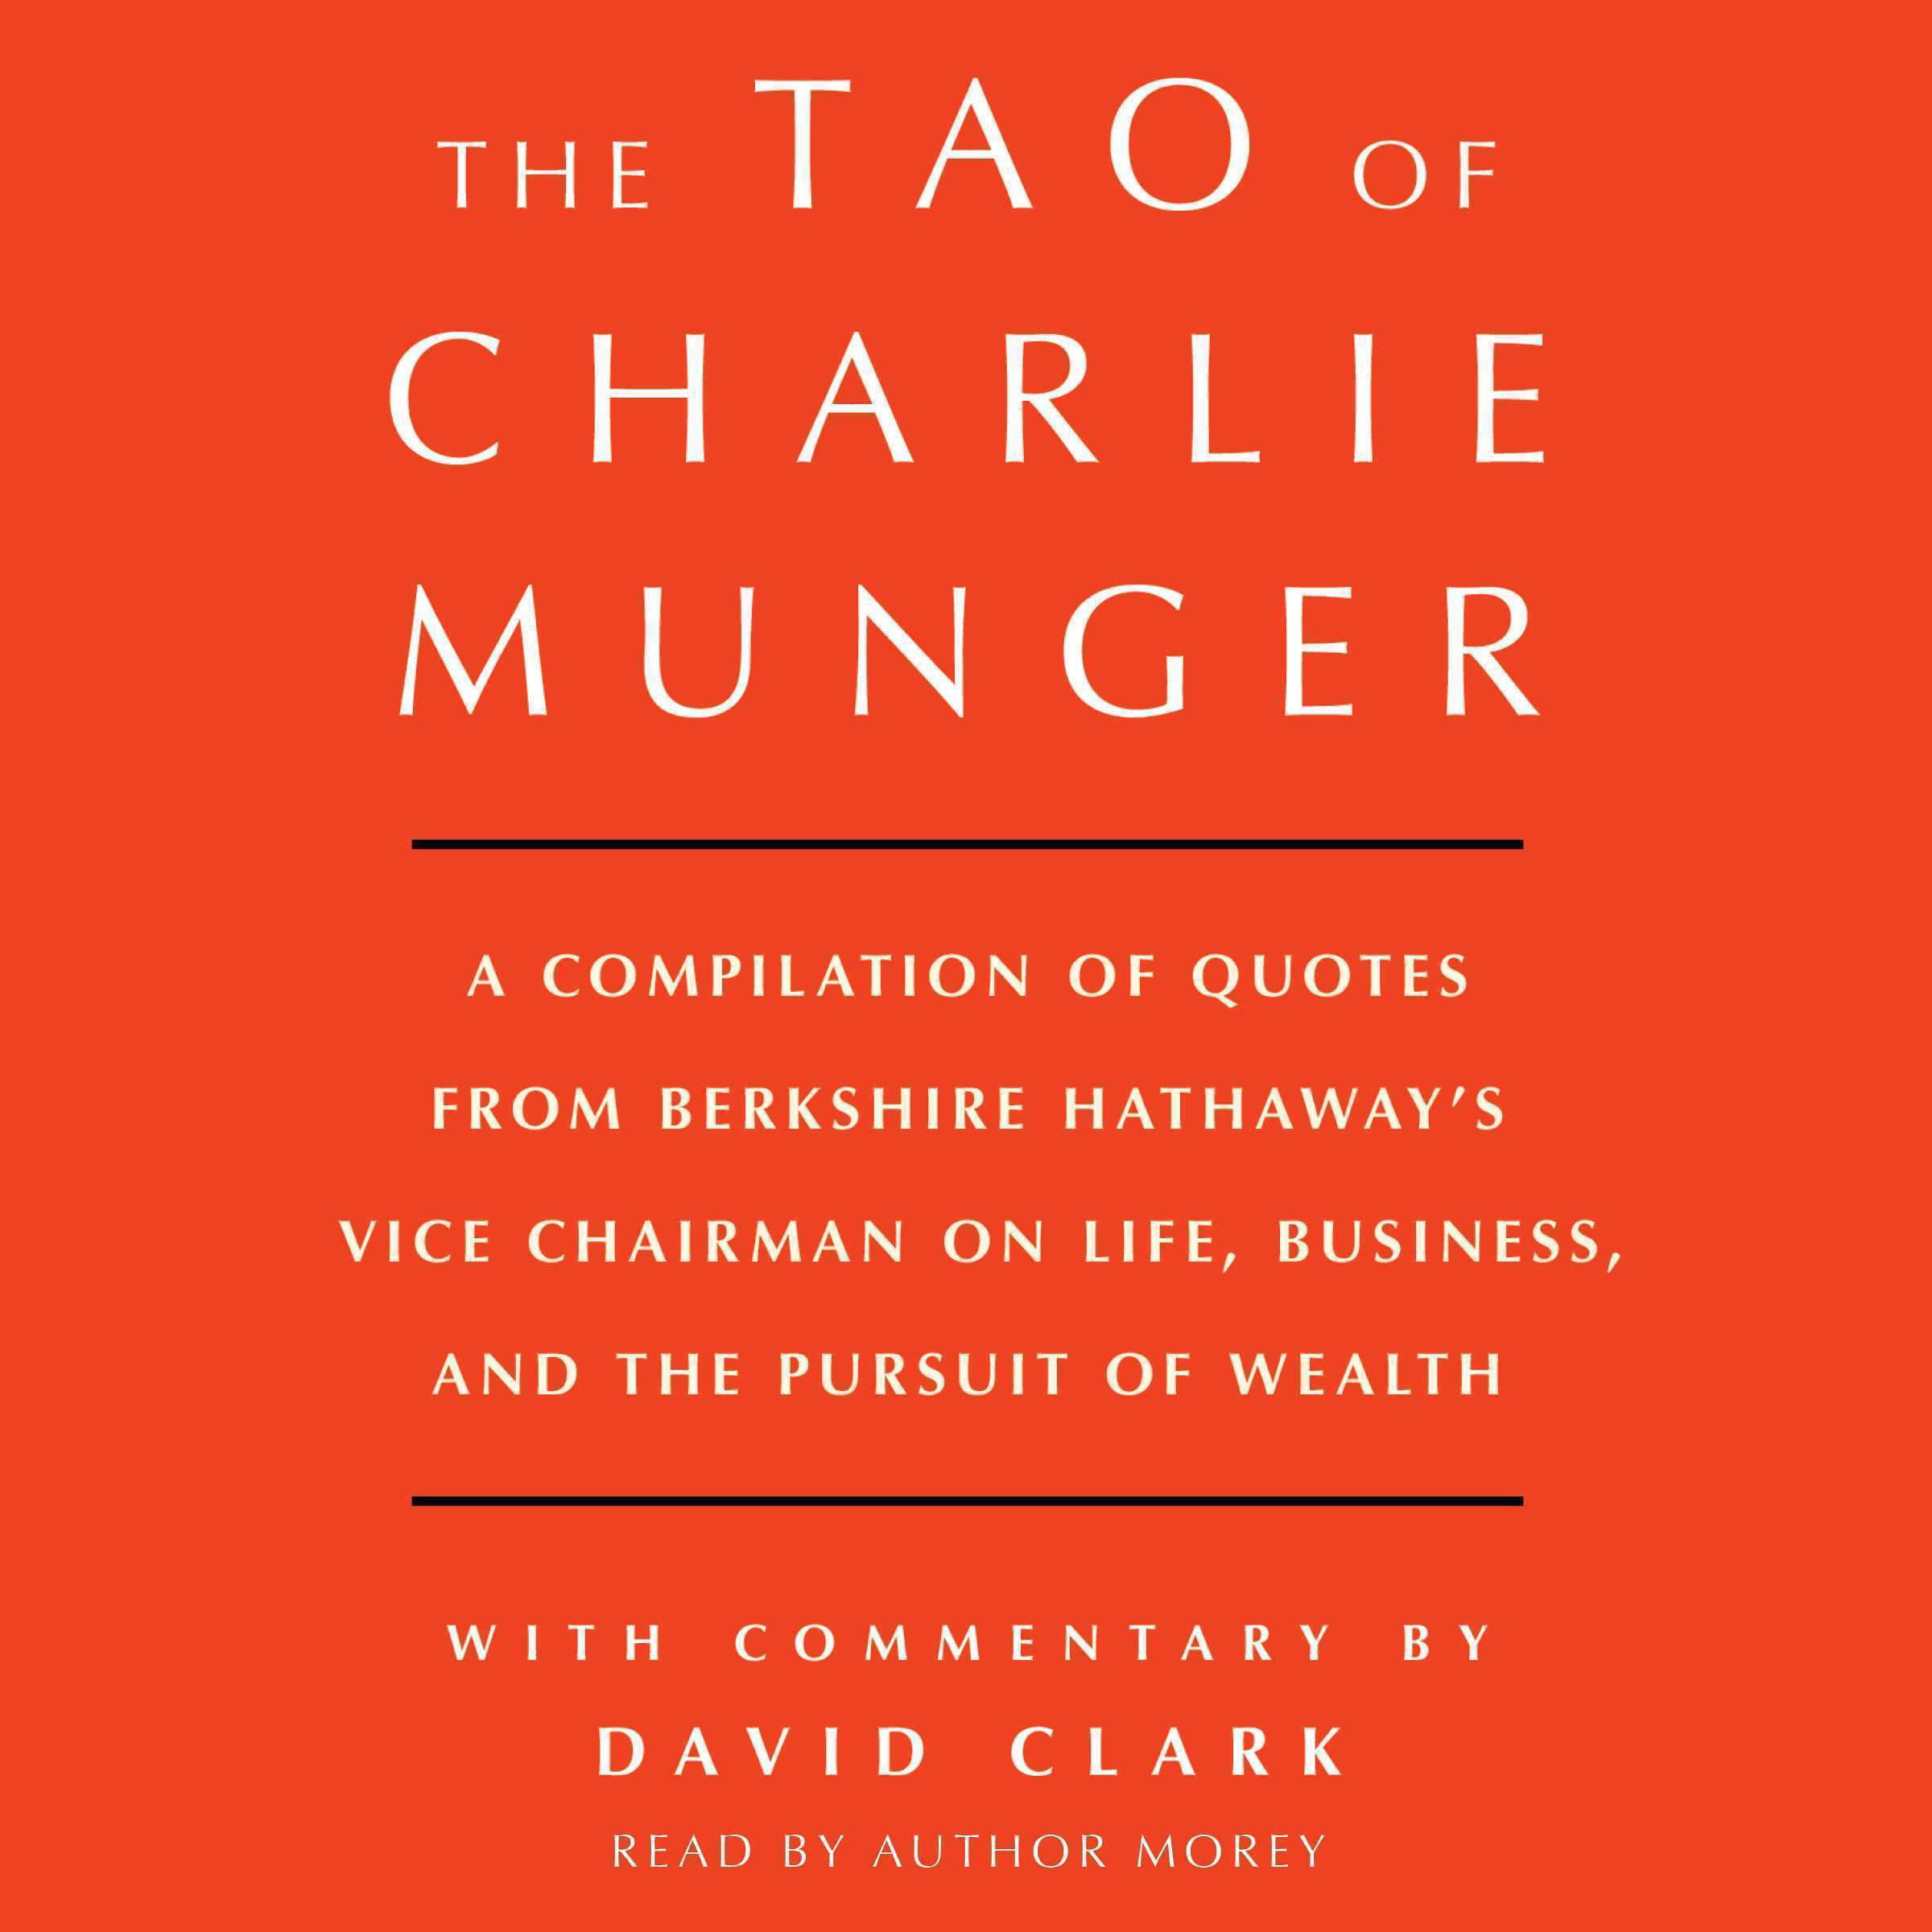 Printable Tao of Charlie Munger: A Compilation of Quotes from Berkshire Hathaway's Vice Chairman on Life, Business, and the Pursuit of Wealth With Commentary by David Clark Audiobook Cover Art